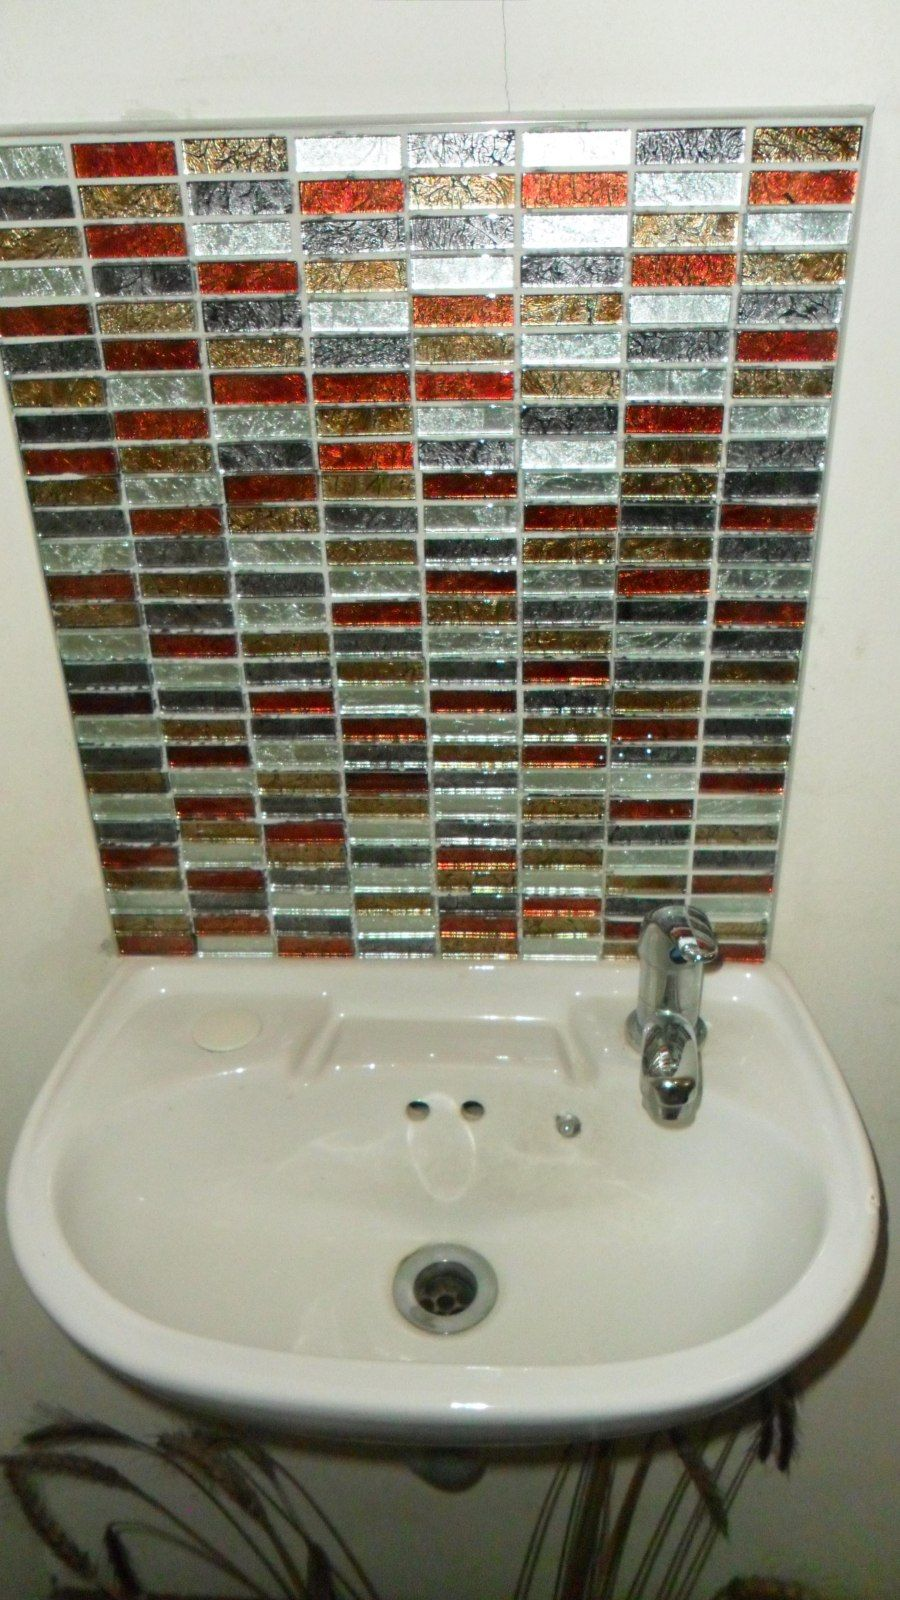 Glass splashbacks for bathroom sinks - I Used Mt0006 Hong Kong Autumn Mix Glass Mosaic Tiles For My Splashback